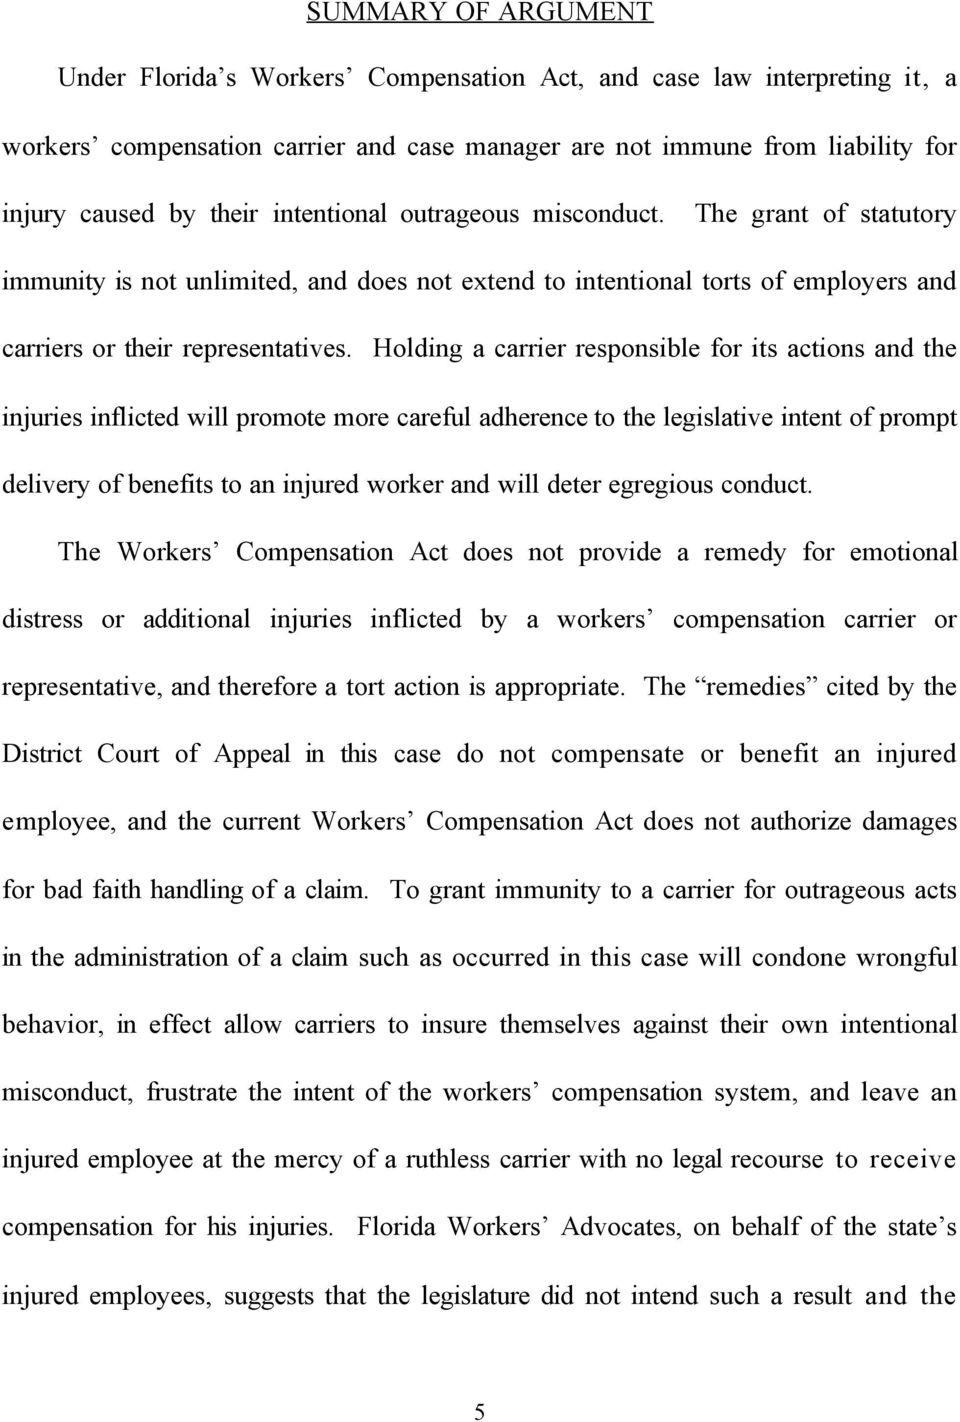 Holding a carrier responsible for its actions and the injuries inflicted will promote more careful adherence to the legislative intent of prompt delivery of benefits to an injured worker and will